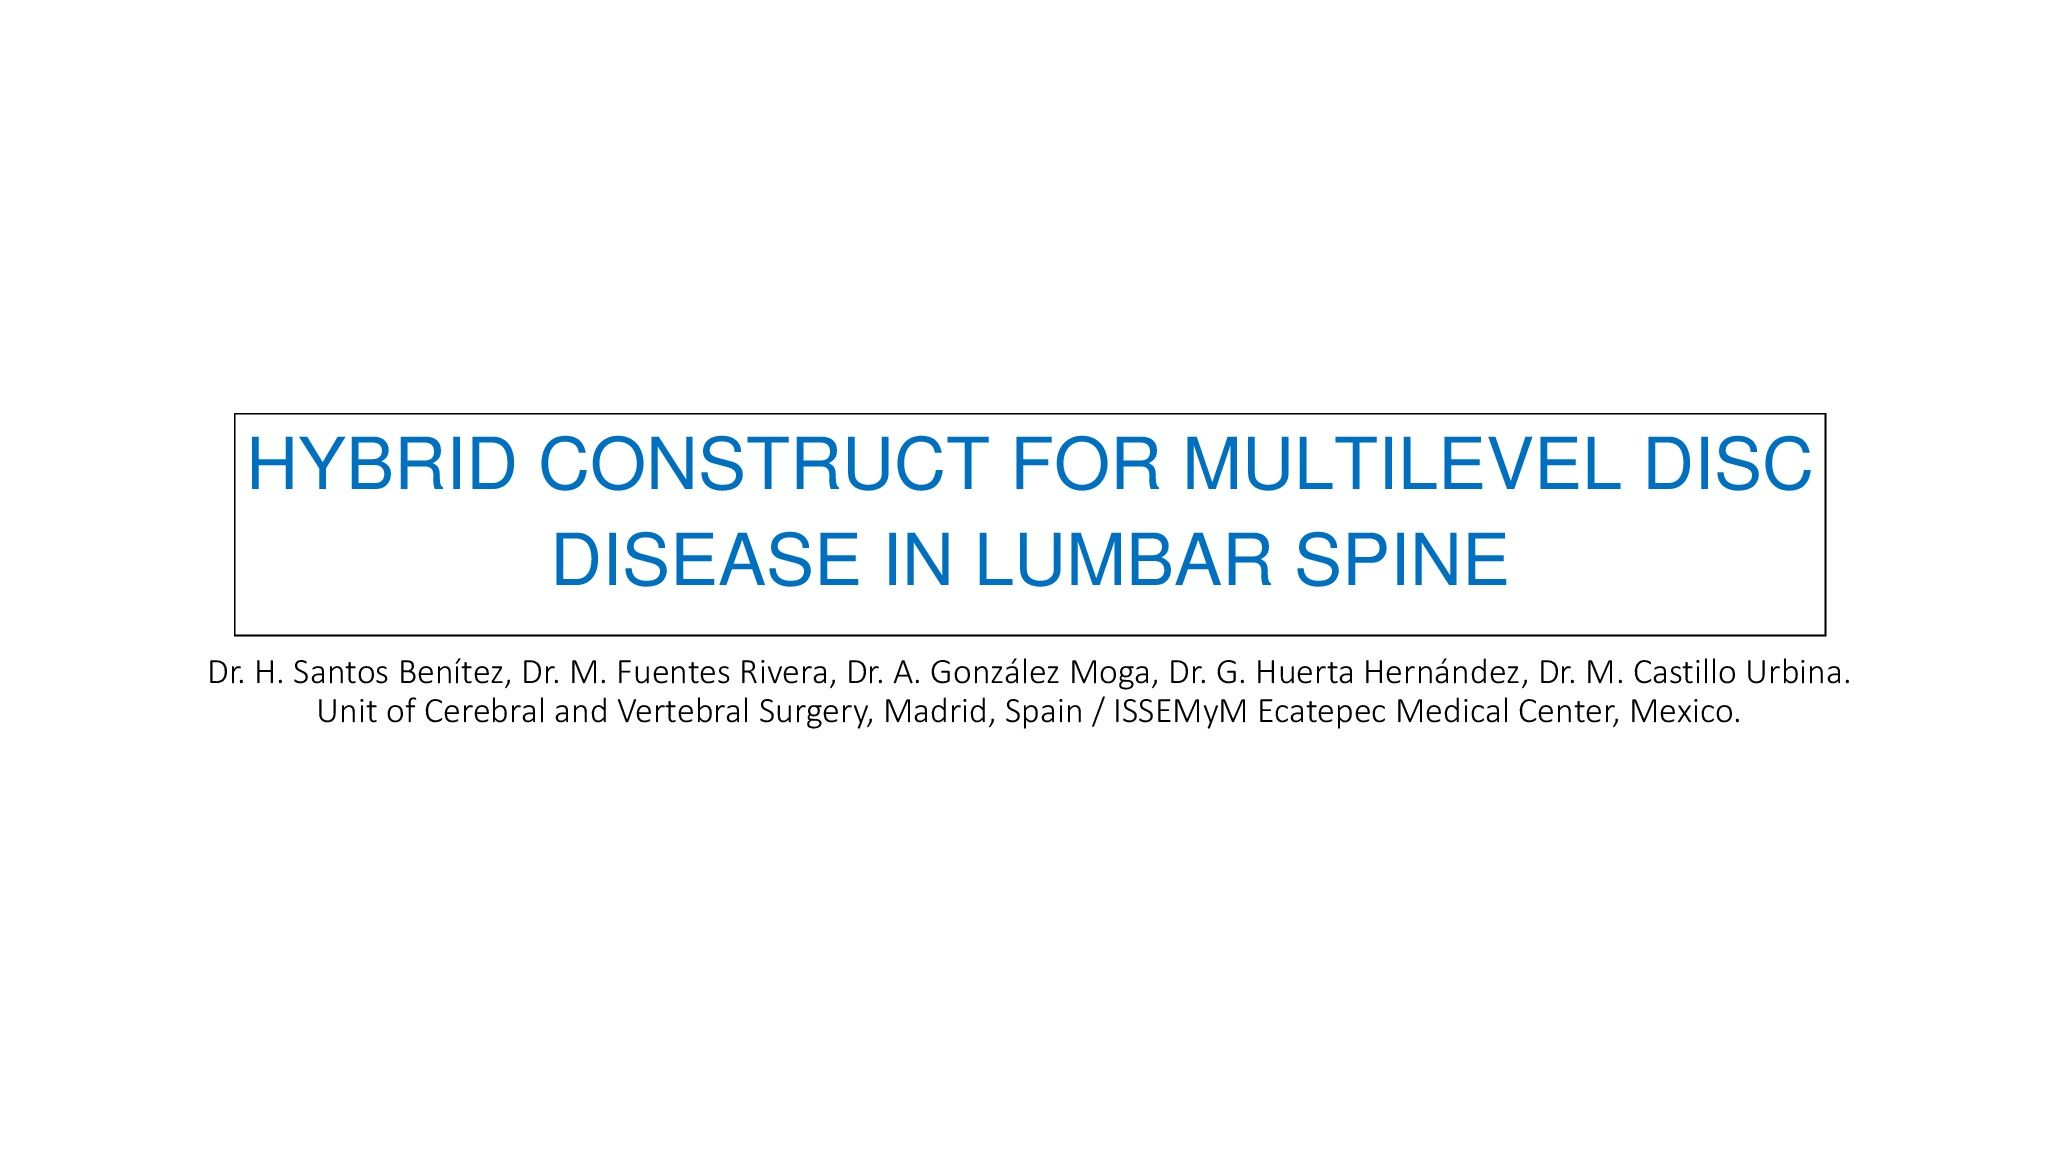 Hybrid Construct for Multilevel Disc Disease in Lumbar Spine